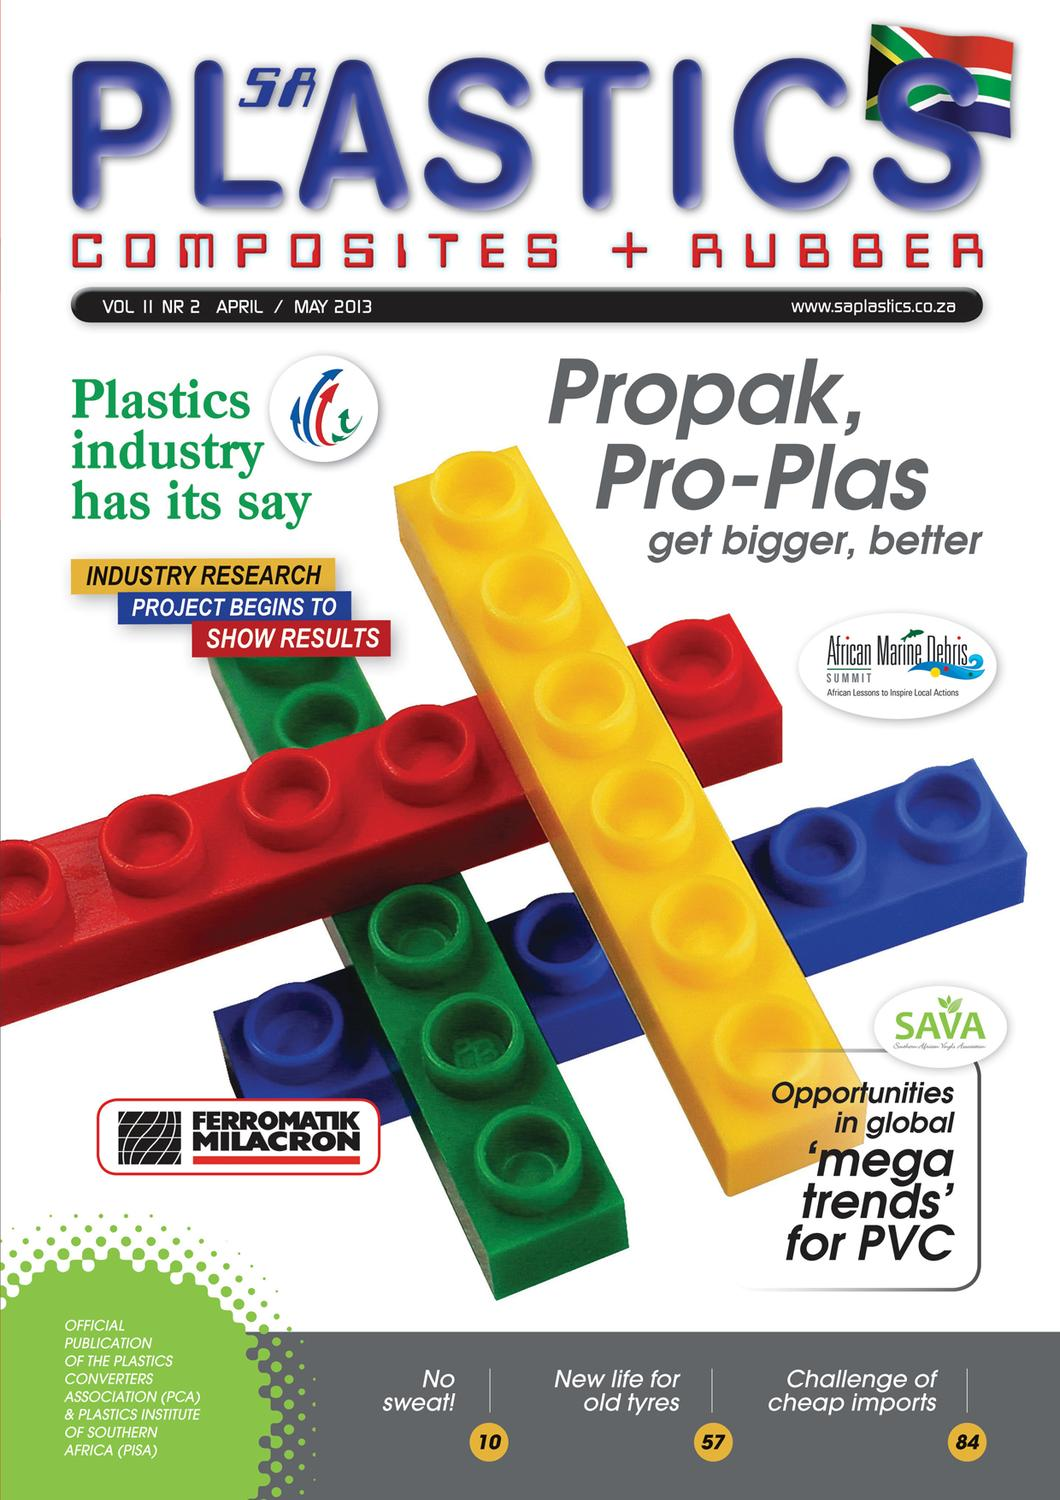 Sa Plastics Composites Rubber By Wiring Devices Kh 50amp Plug And Connector With Flip Seal Issuu